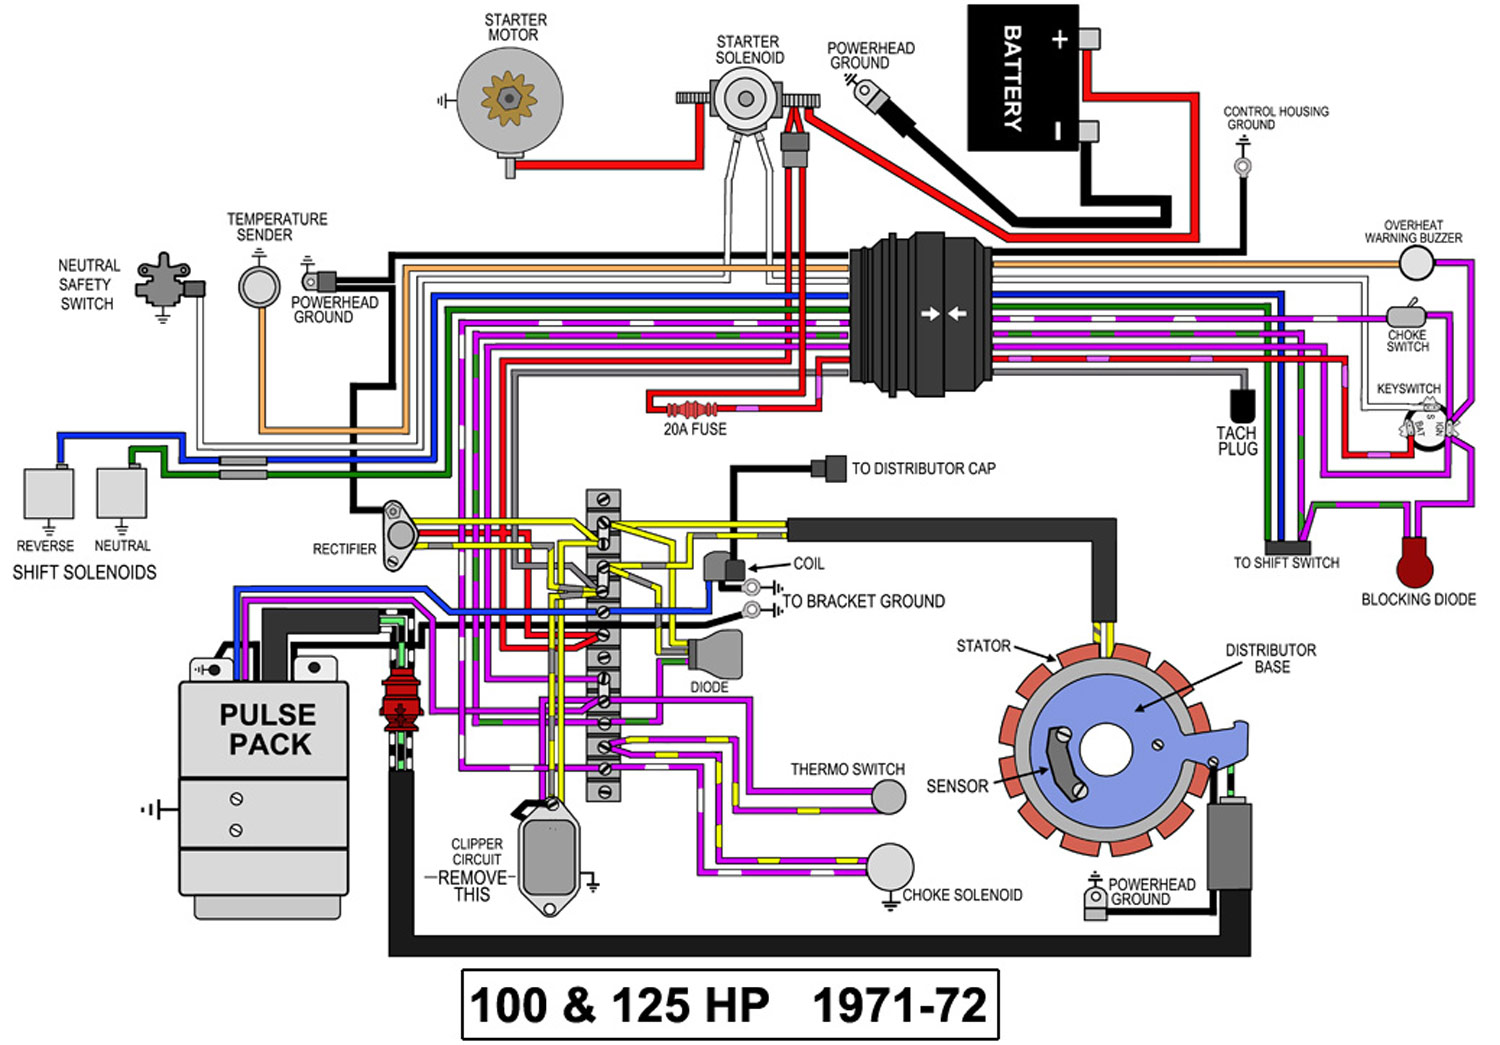 Johnson 70 Stinger 2 Wiring Diagram 2 stroke johnson ... on johnson outboard ignition switch wiring, johnson outboard manual pdf, johnson outboard 150 wiring diagram, johnson seahorse 25 hp motor, johnson outboard motor wiring diagram, johnson wiring color codes, johnson 115 outboard schematic,